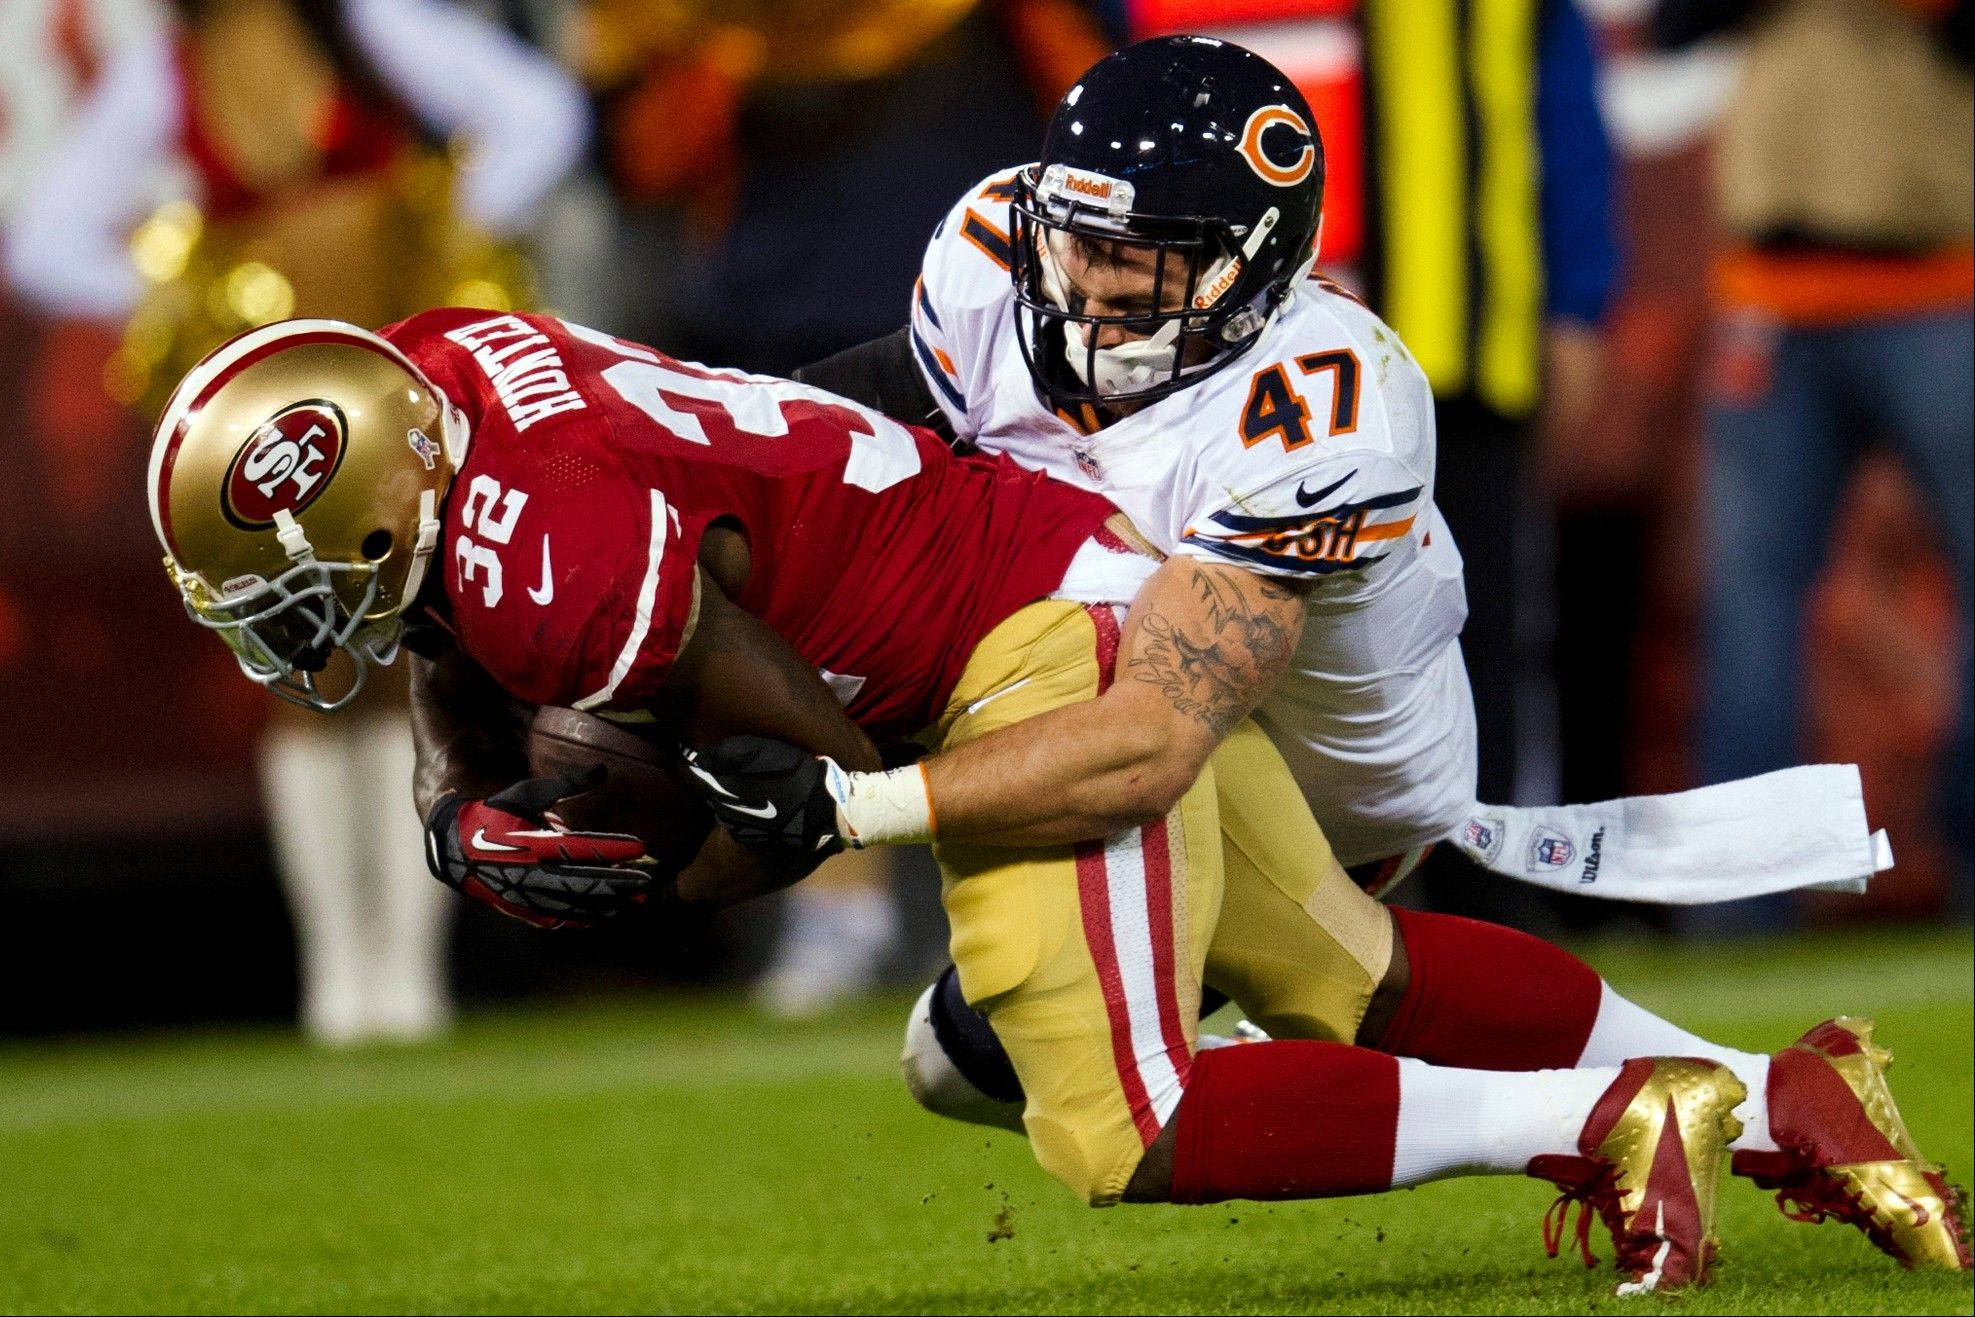 San Francisco 49ers running back Kendall Hunter is tackled by Chicago Bears free safety Chris Conte as he leans into the end zone for a touchdown during the second quarter.